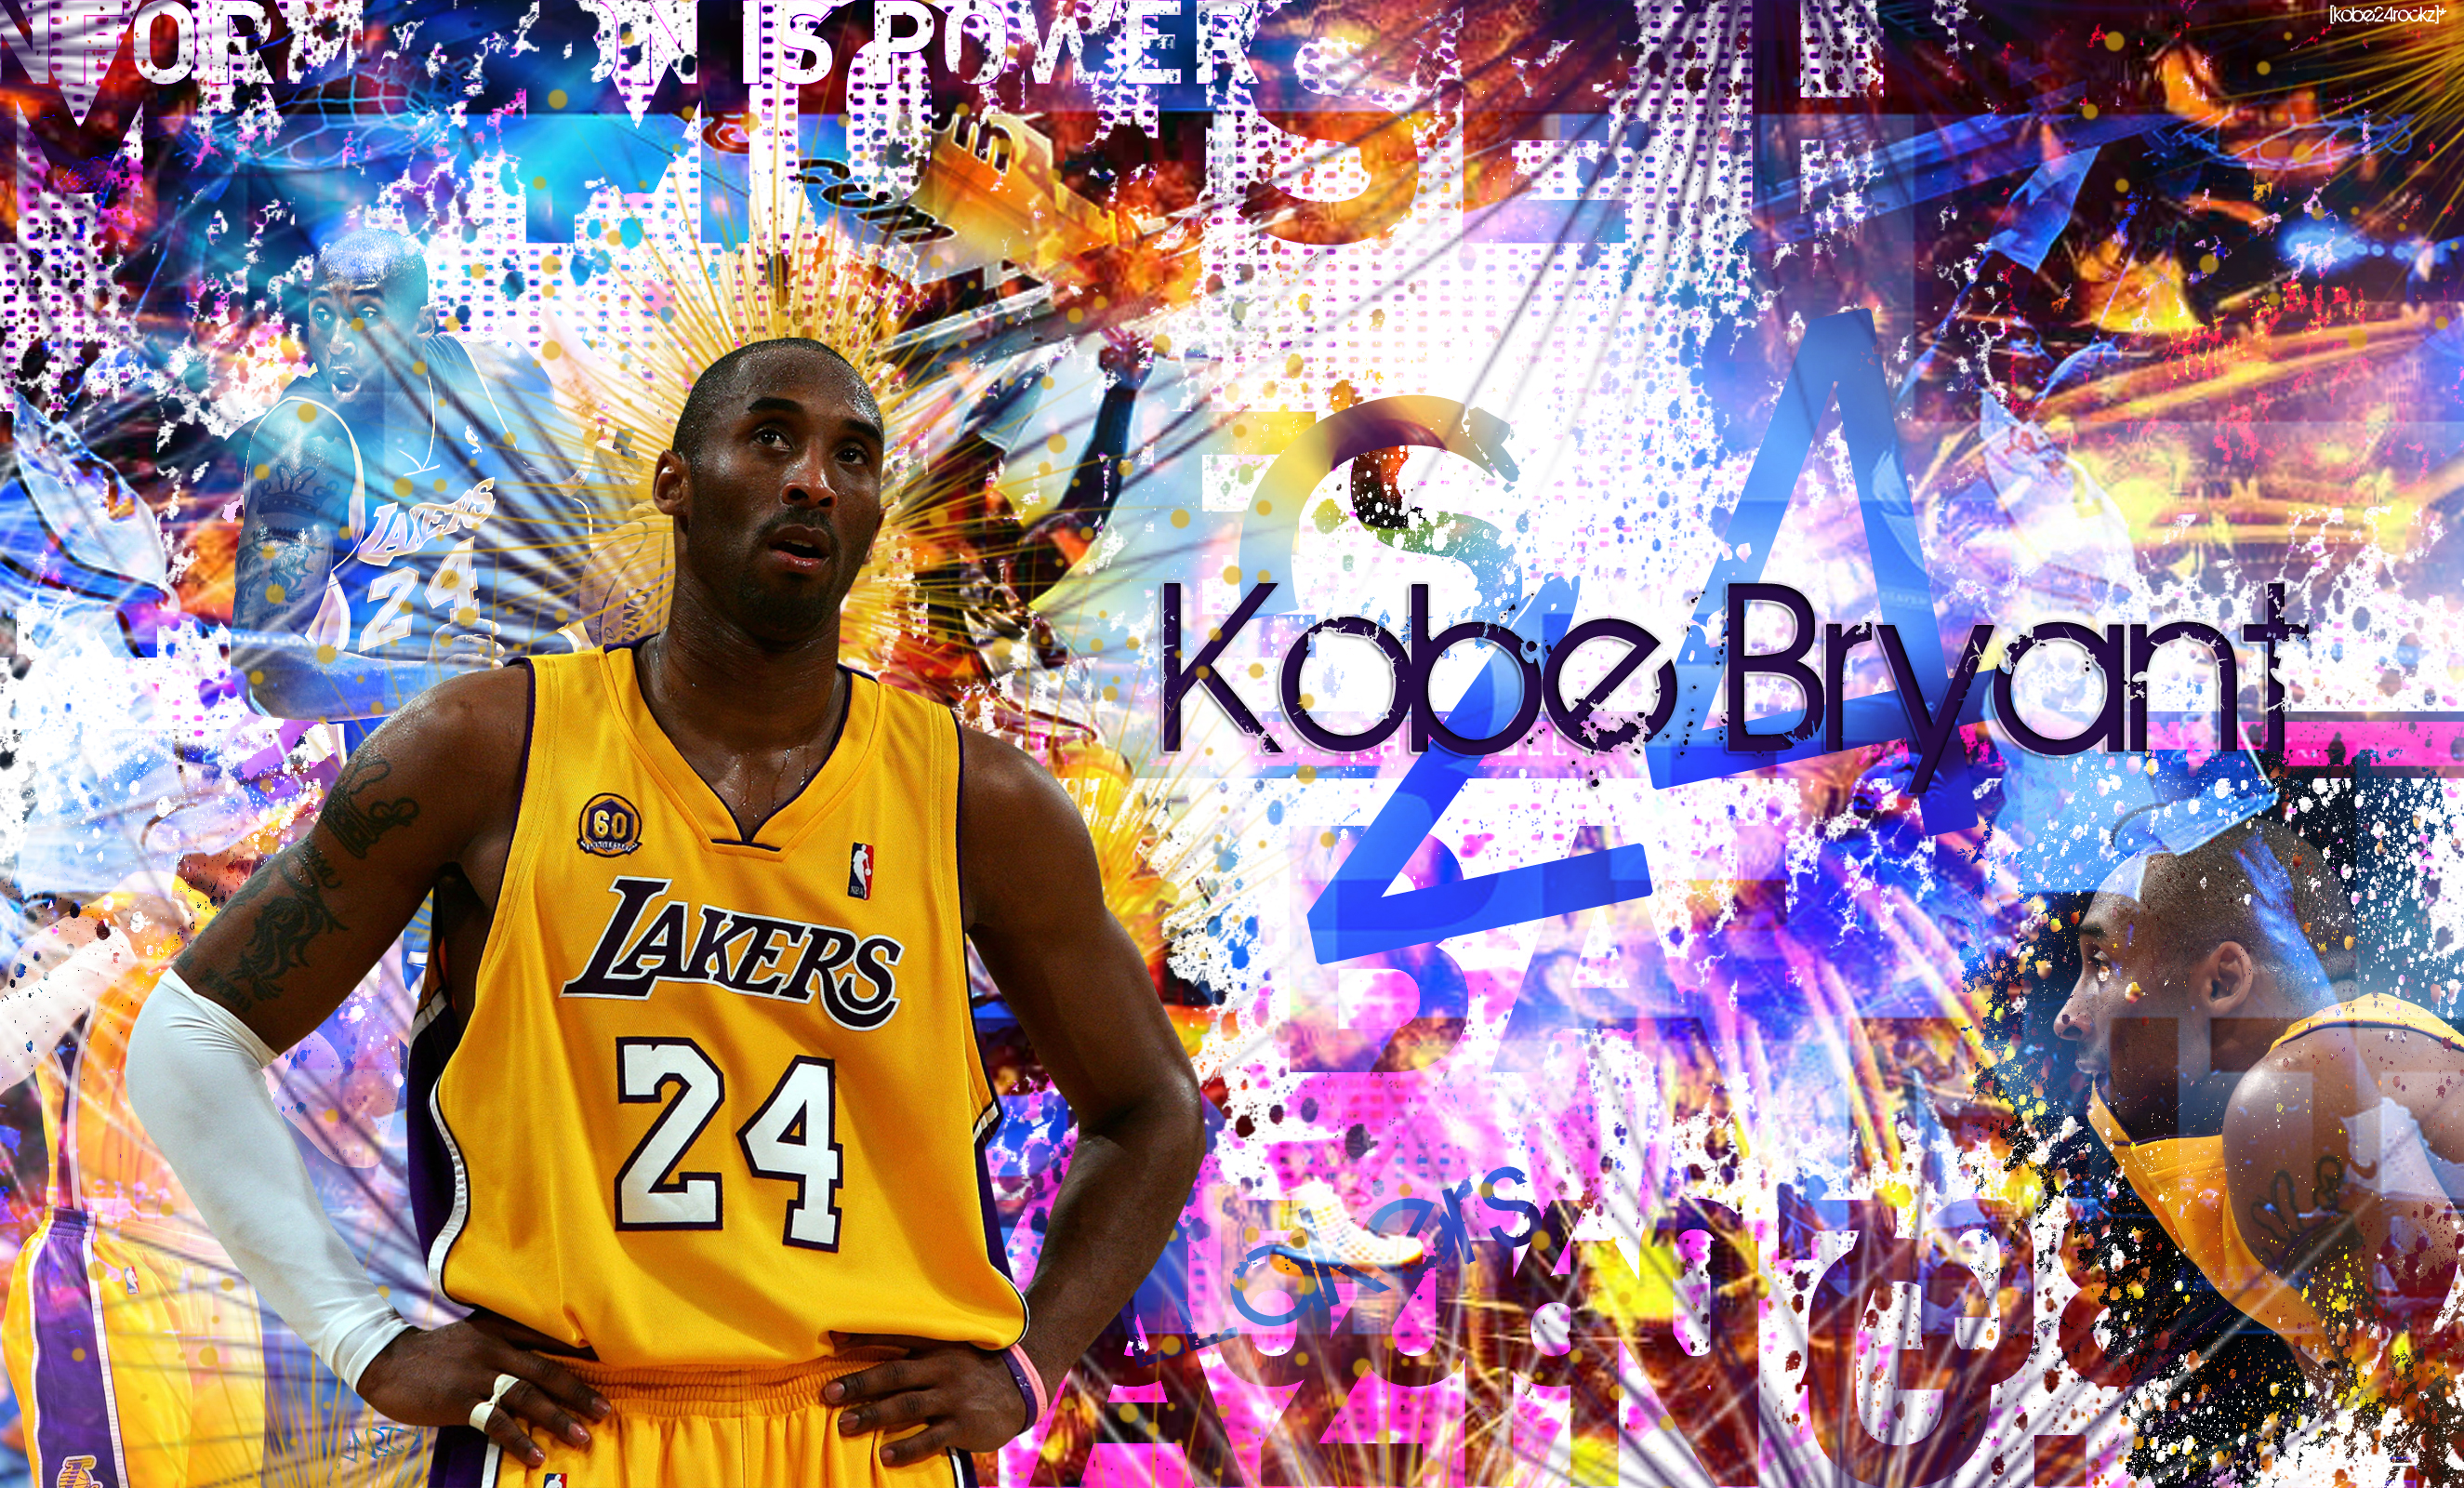 Kobe Bryant Wallpapers Download By Billion Photos